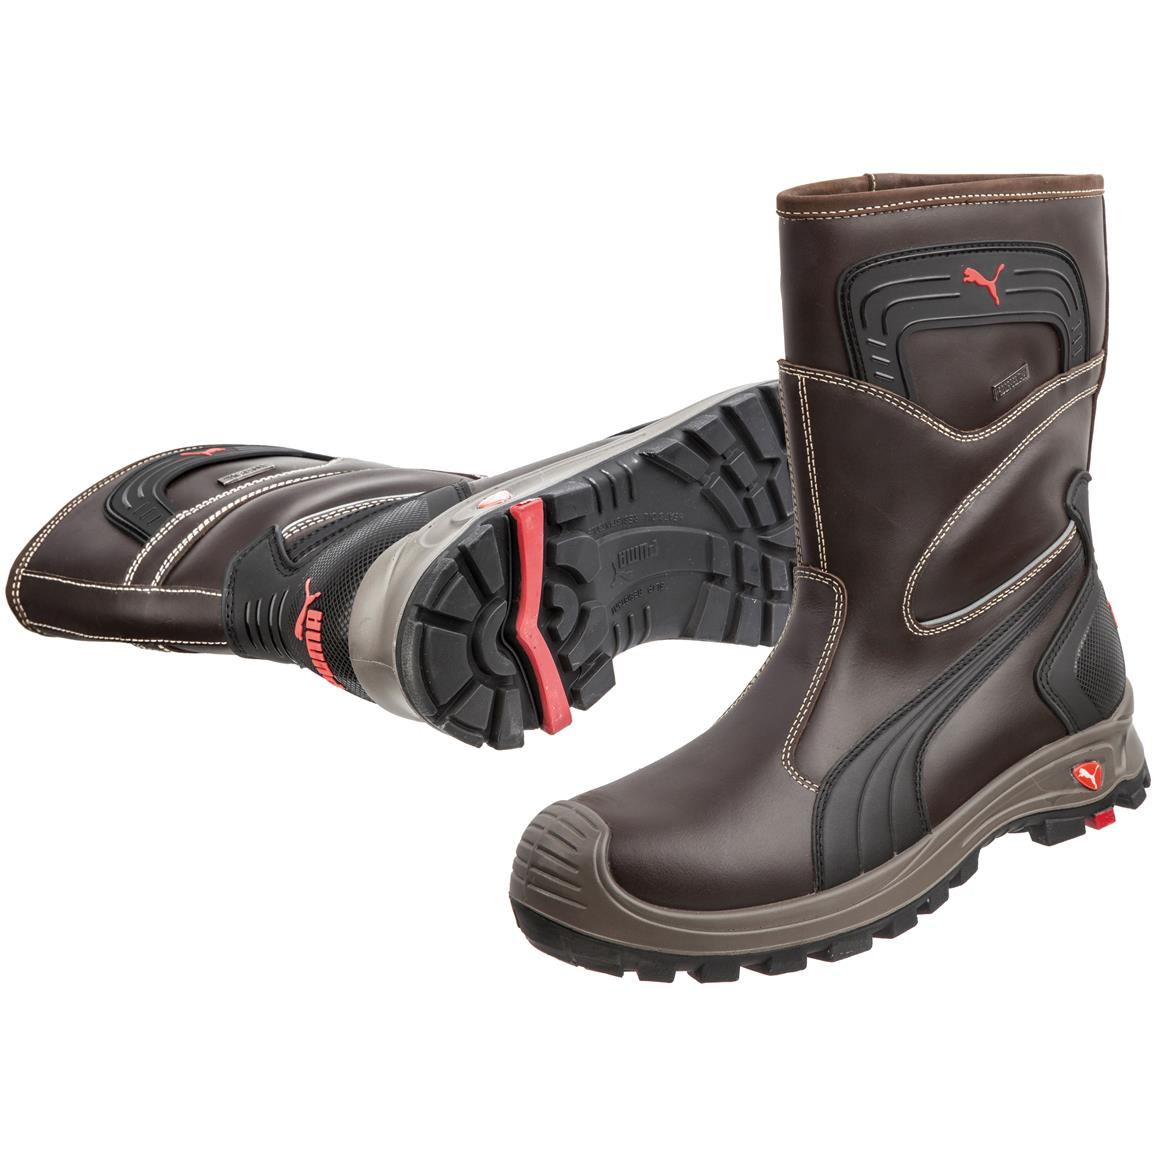 Men's Puma Safety Rigger EH Waterproof Safety Toe Boots